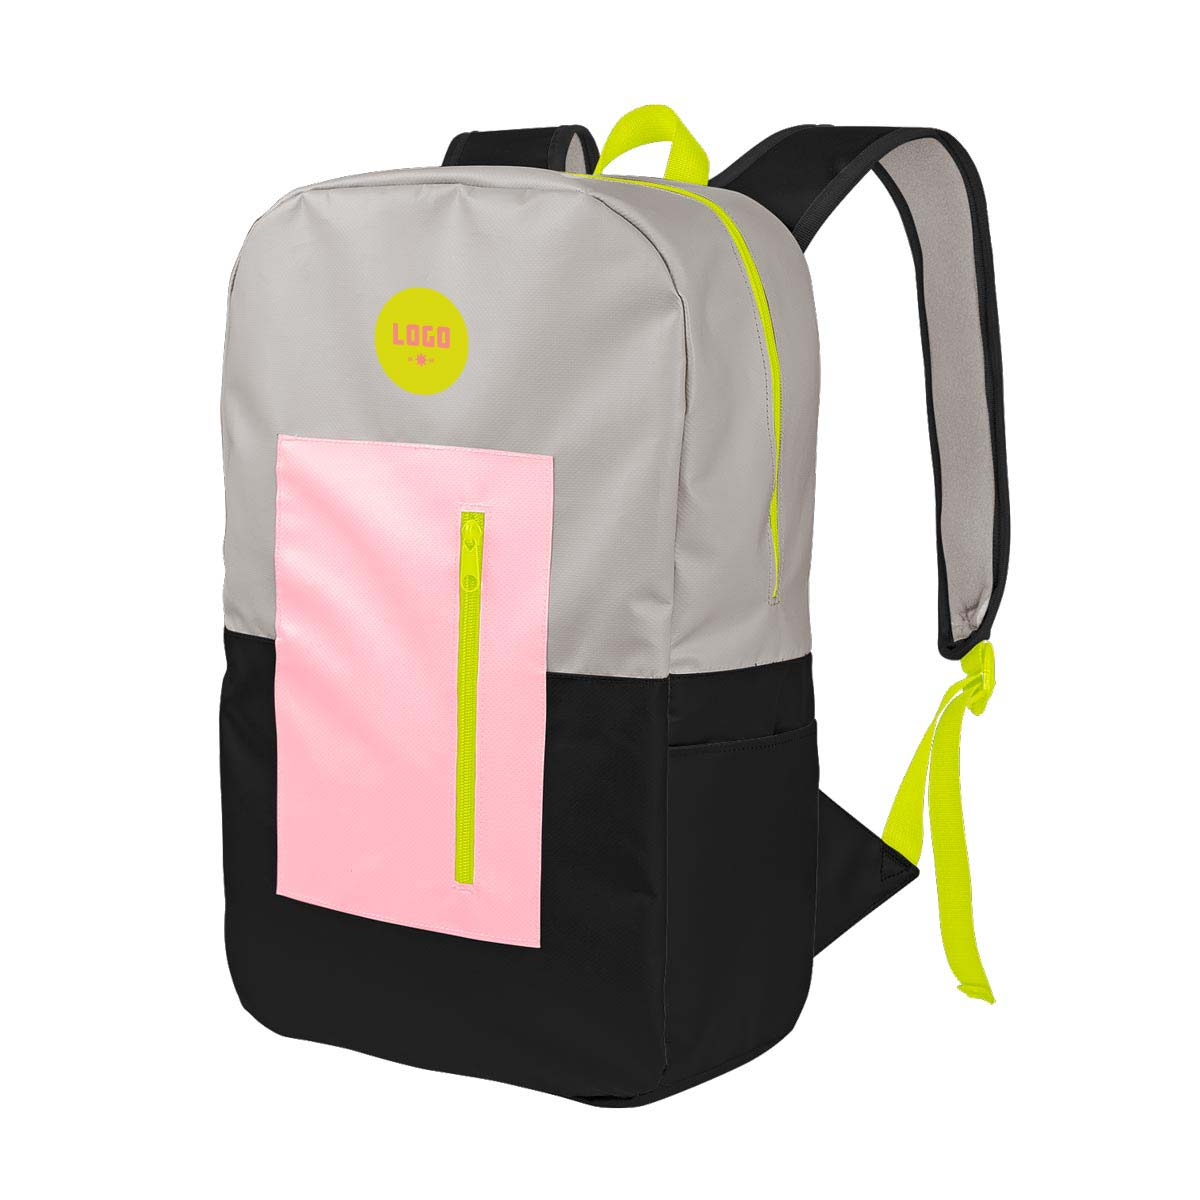 361700 tarpo backpack full color imprint one location